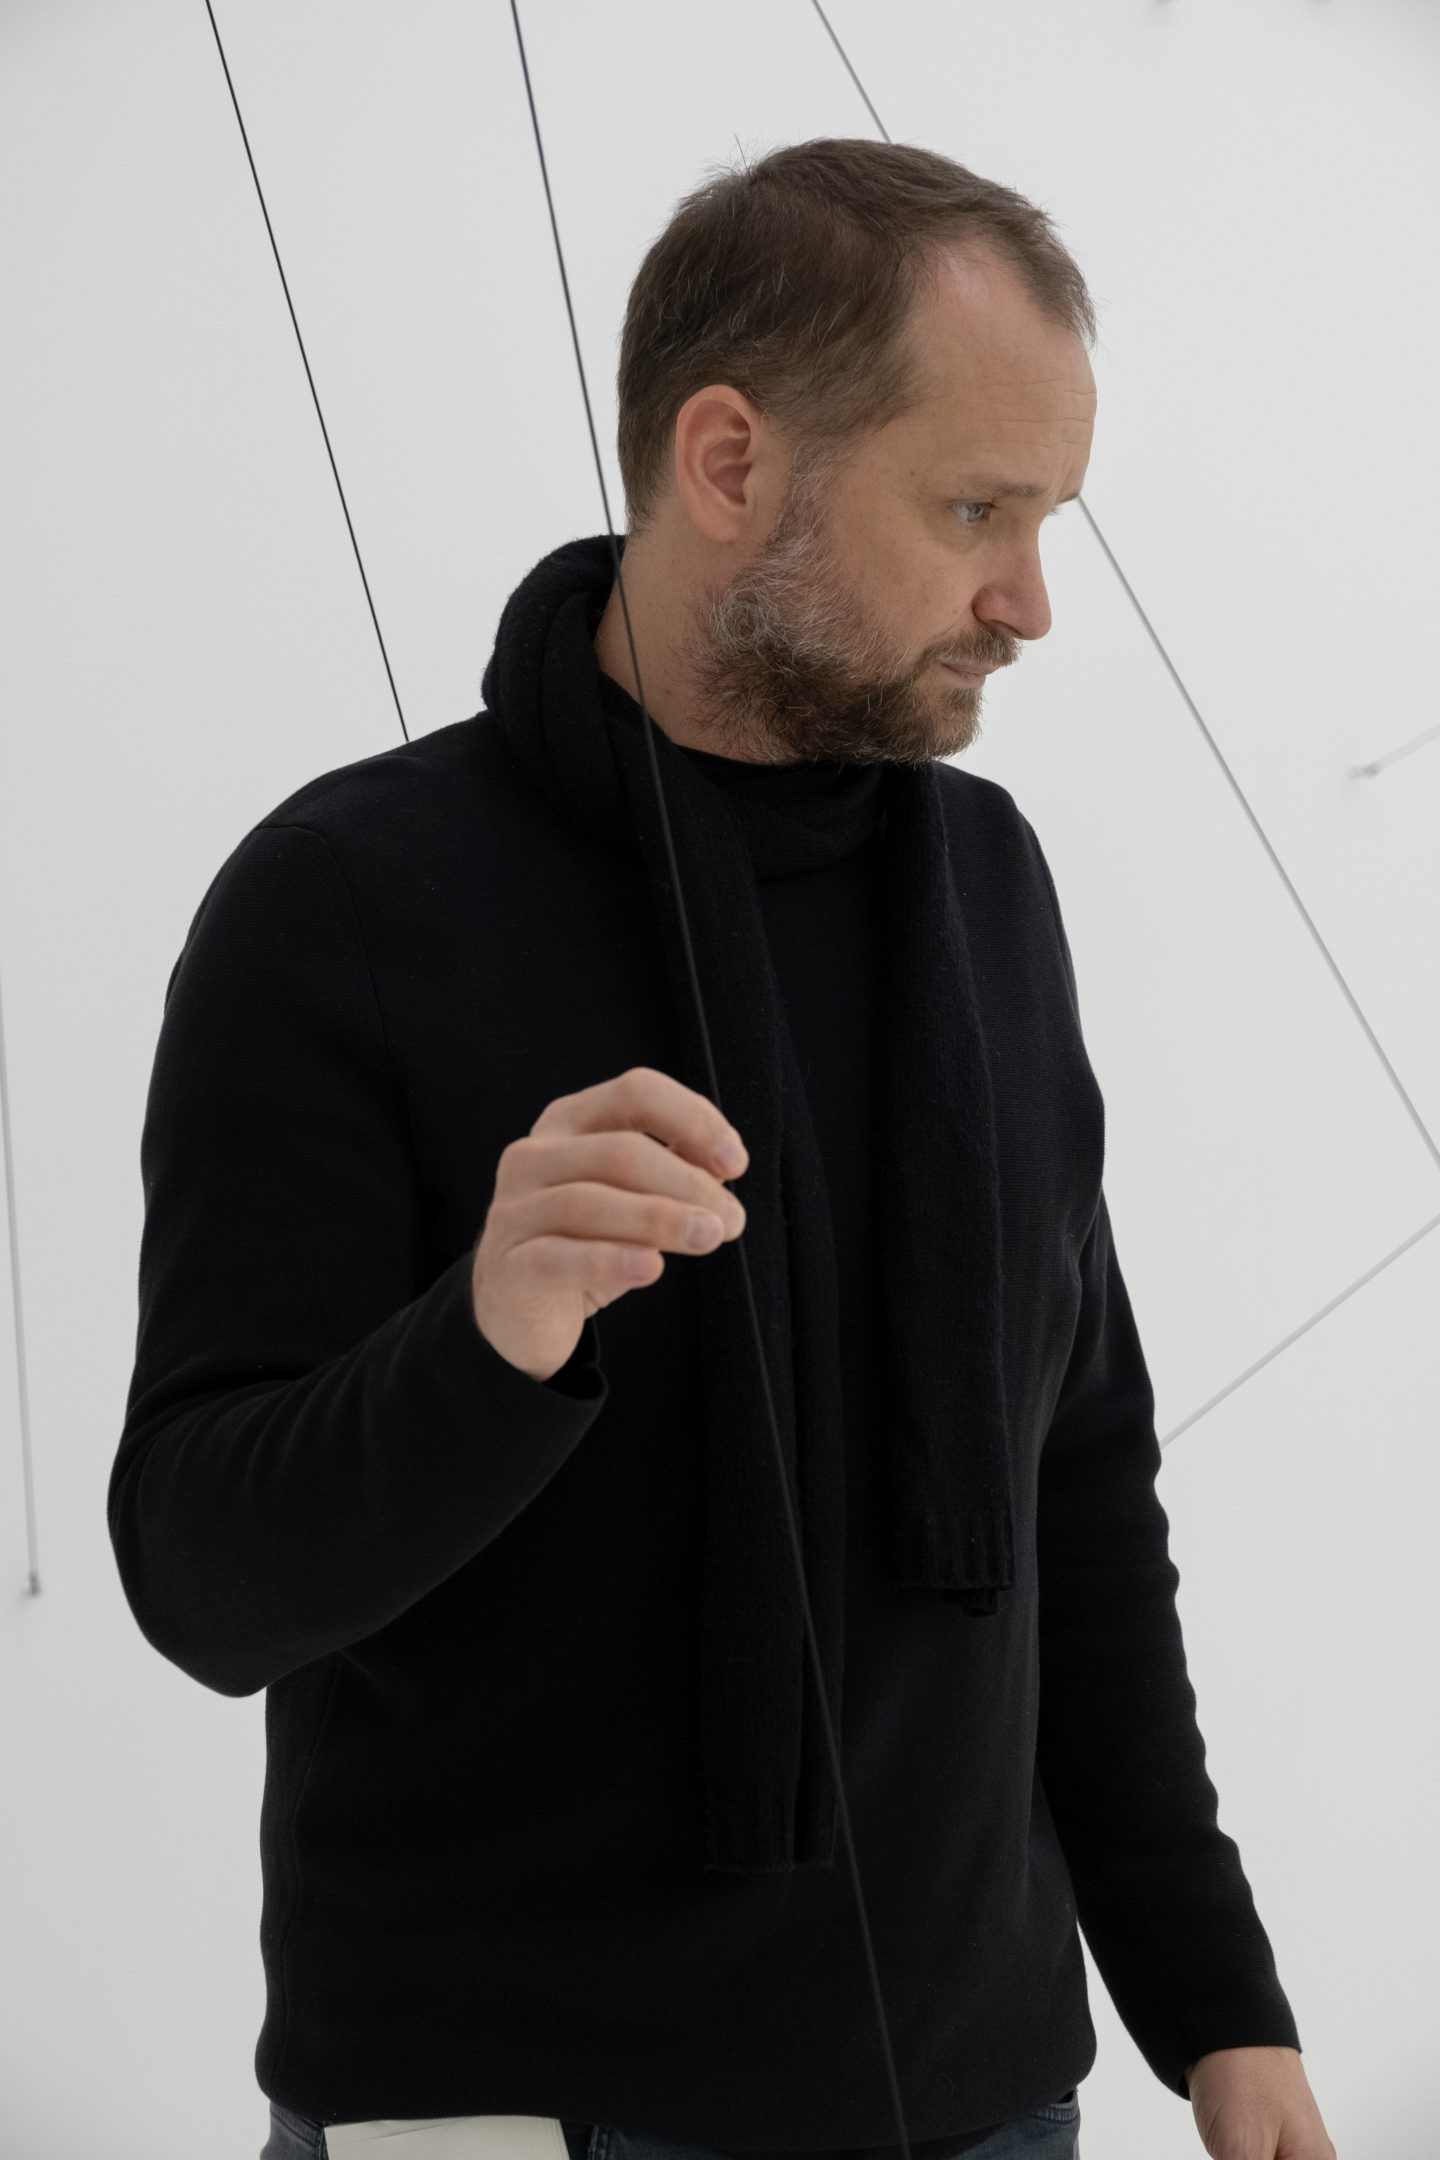 IGNANT-Art-Interview-Saraceno-14